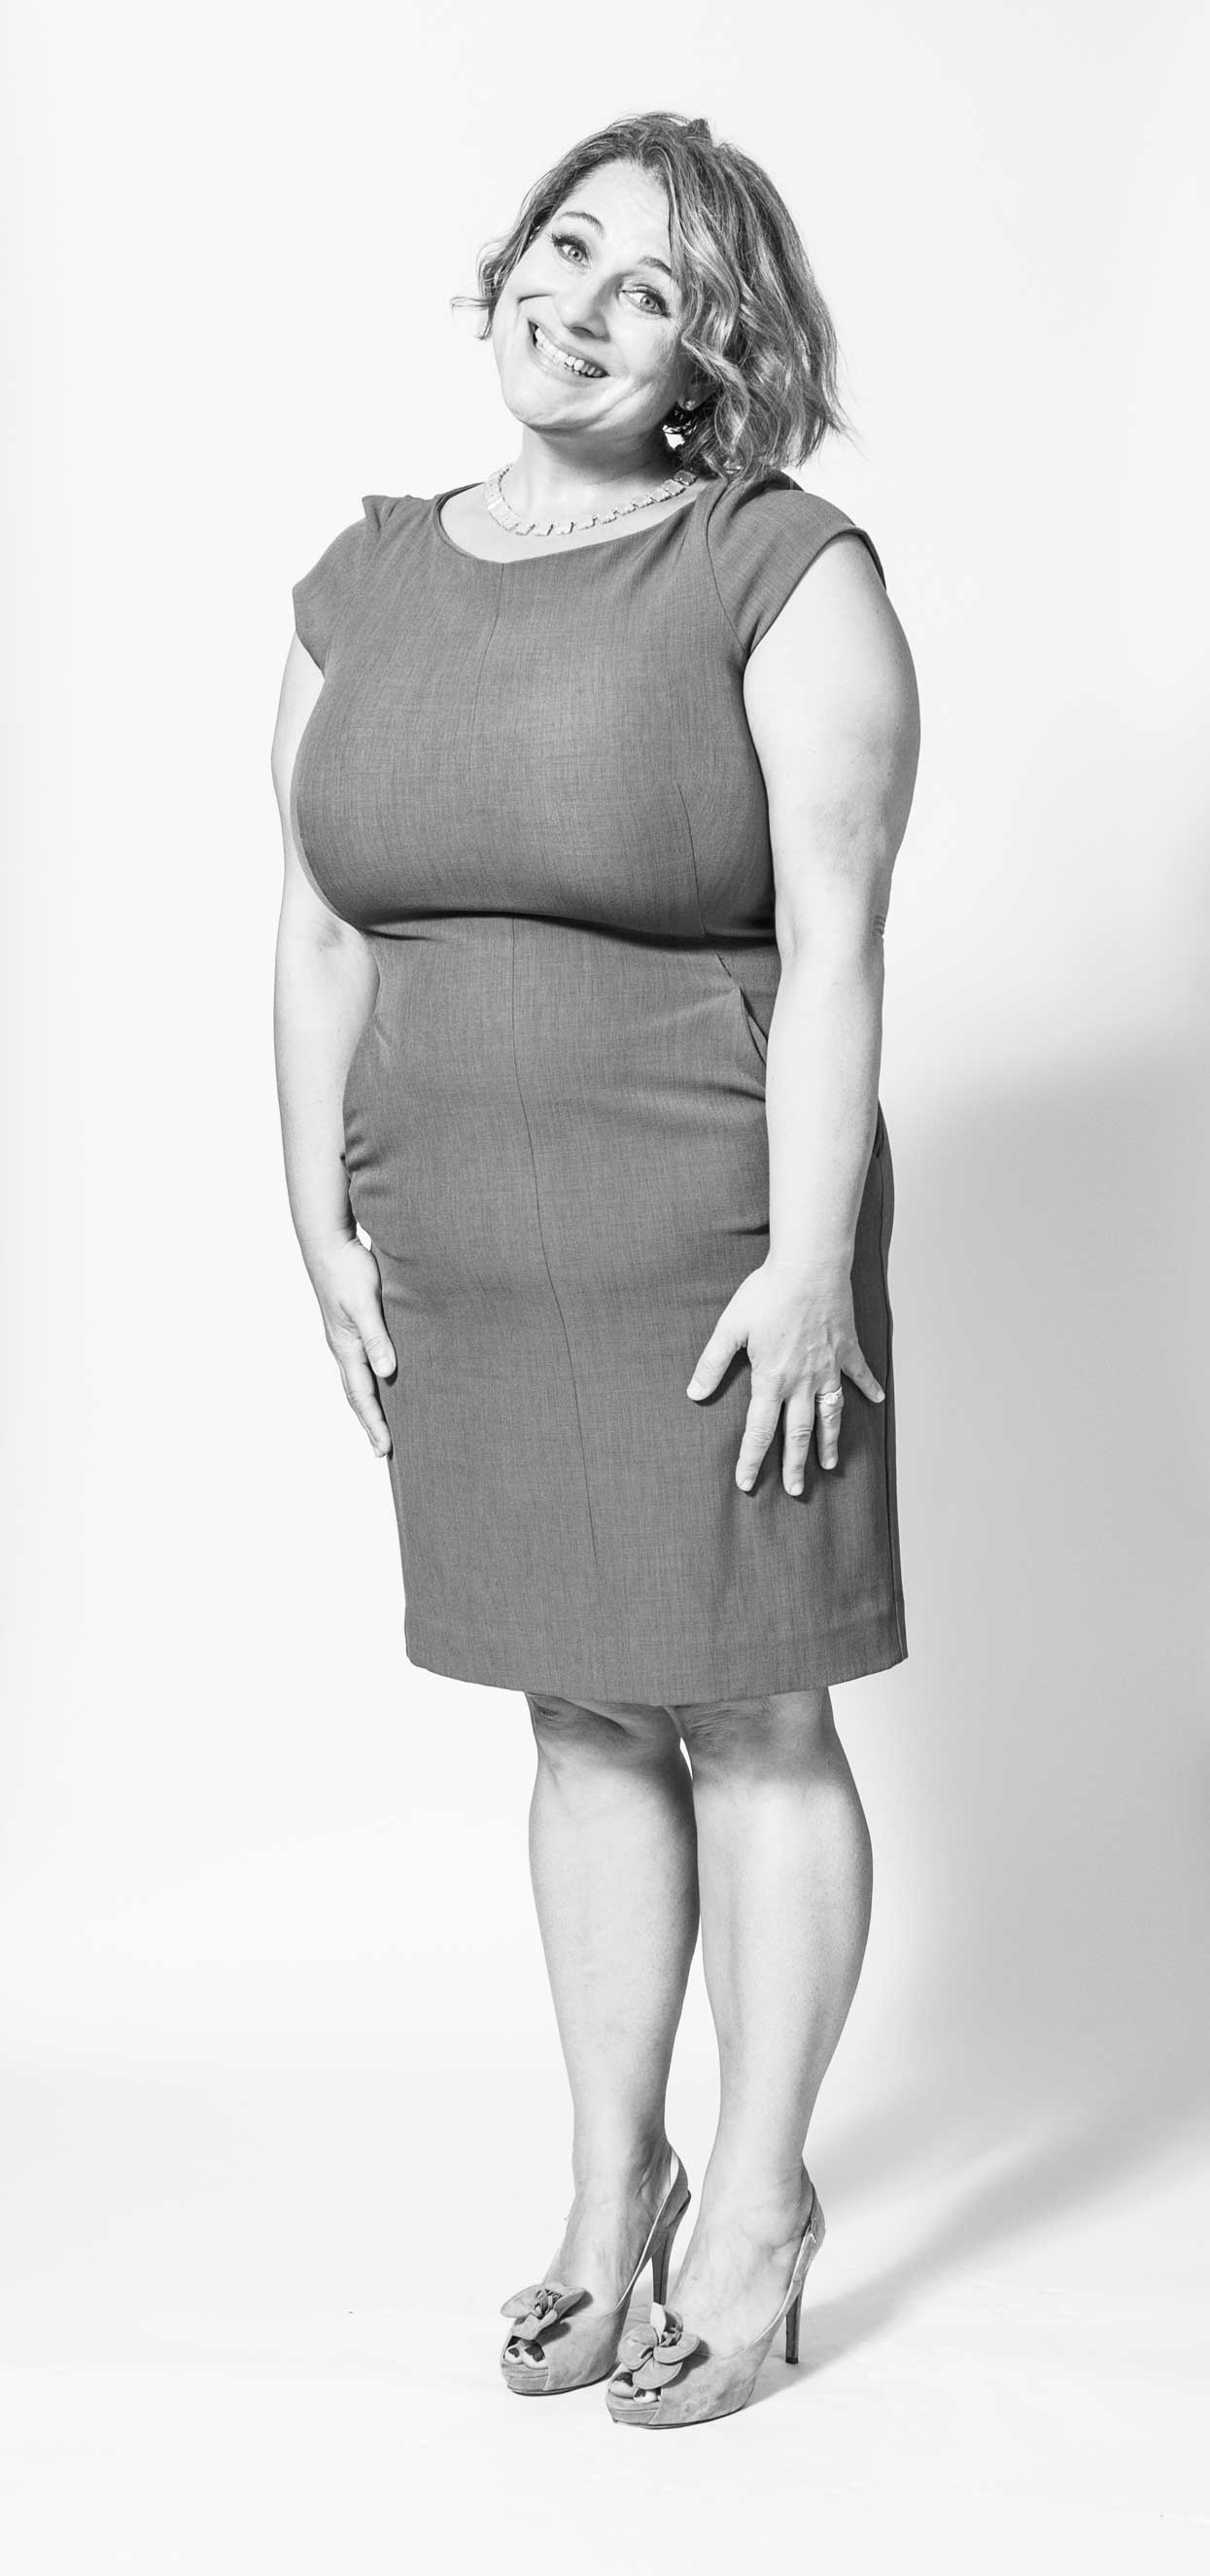 Portrait of author Jennifer Weiner, photographed at the Time Inc. photo studios on Friday, September 9 2016.